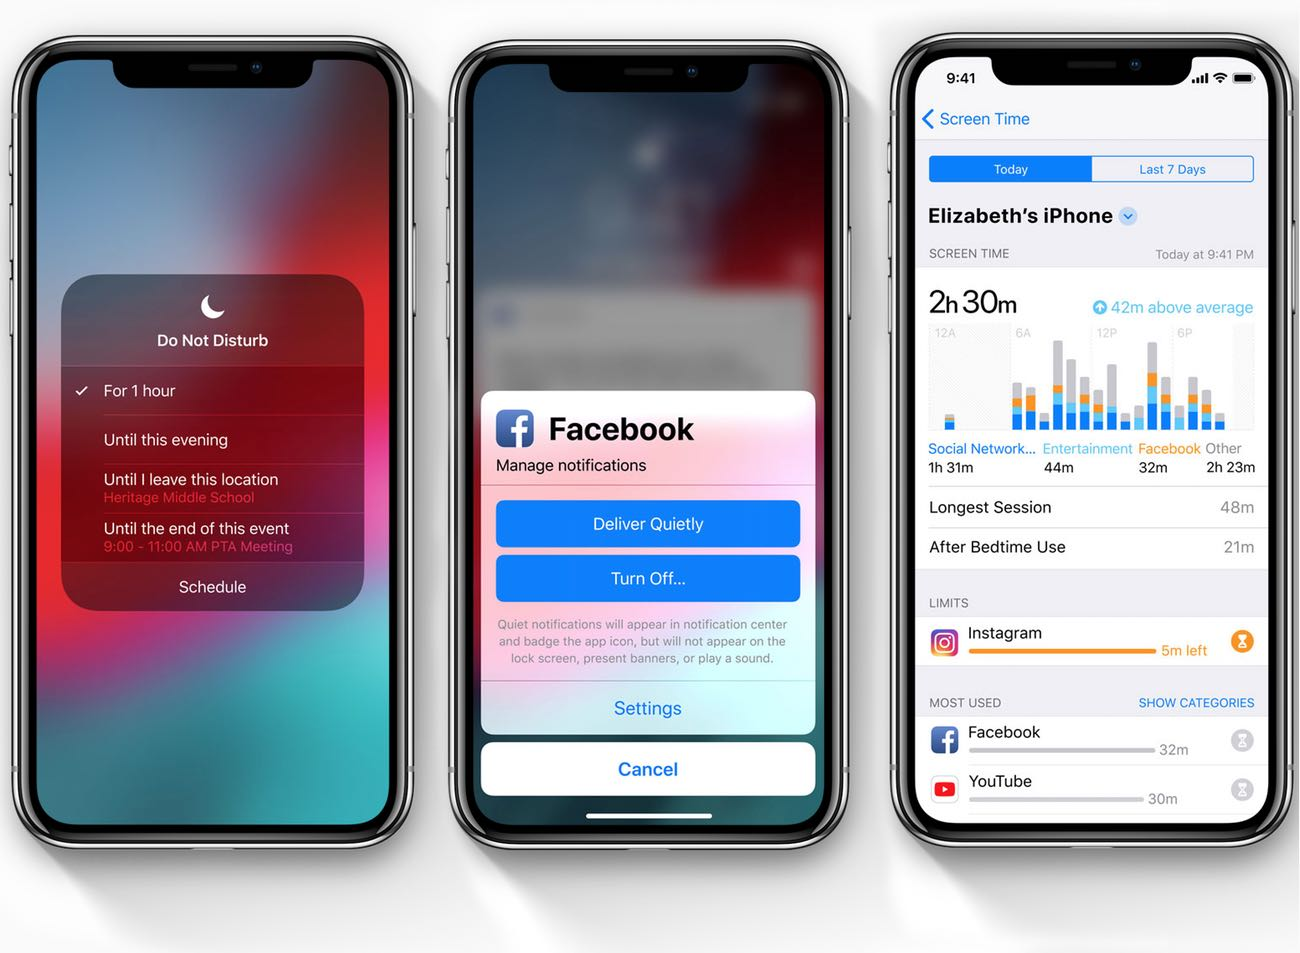 iOS 12 Do Not Disturb, Notifications, and Screen Time